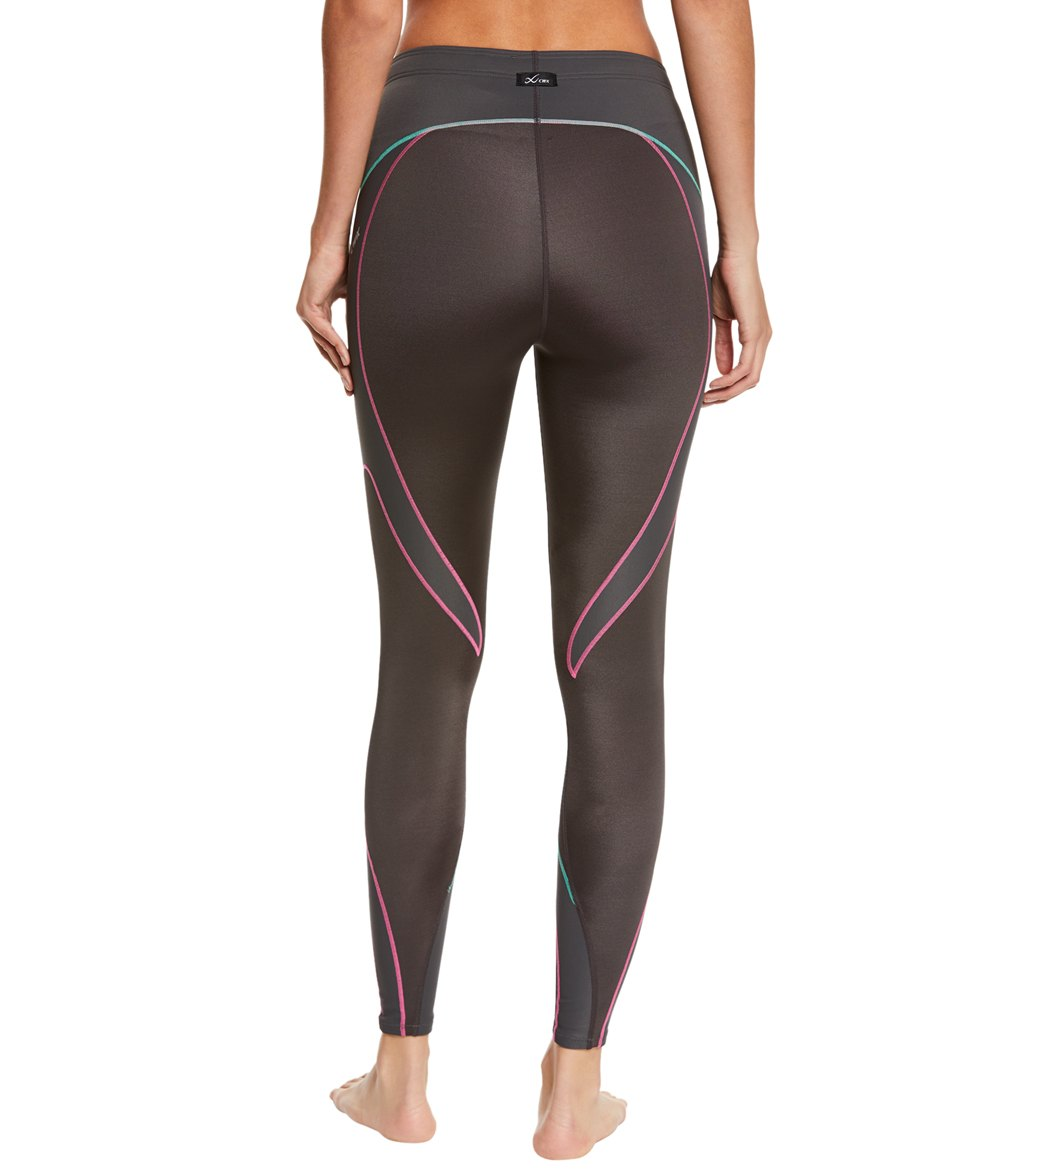 3e0b15acff56f CW-X Women's Stabilyx Compression Running Tights at SwimOutlet.com - Free  Shipping